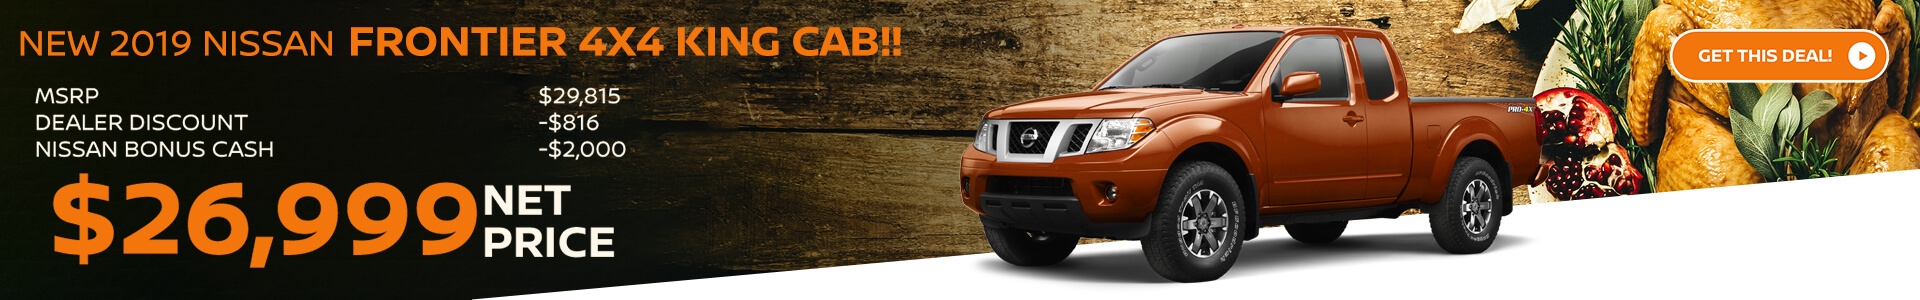 2019 Nissan Frontier King Cab - Lease for $299